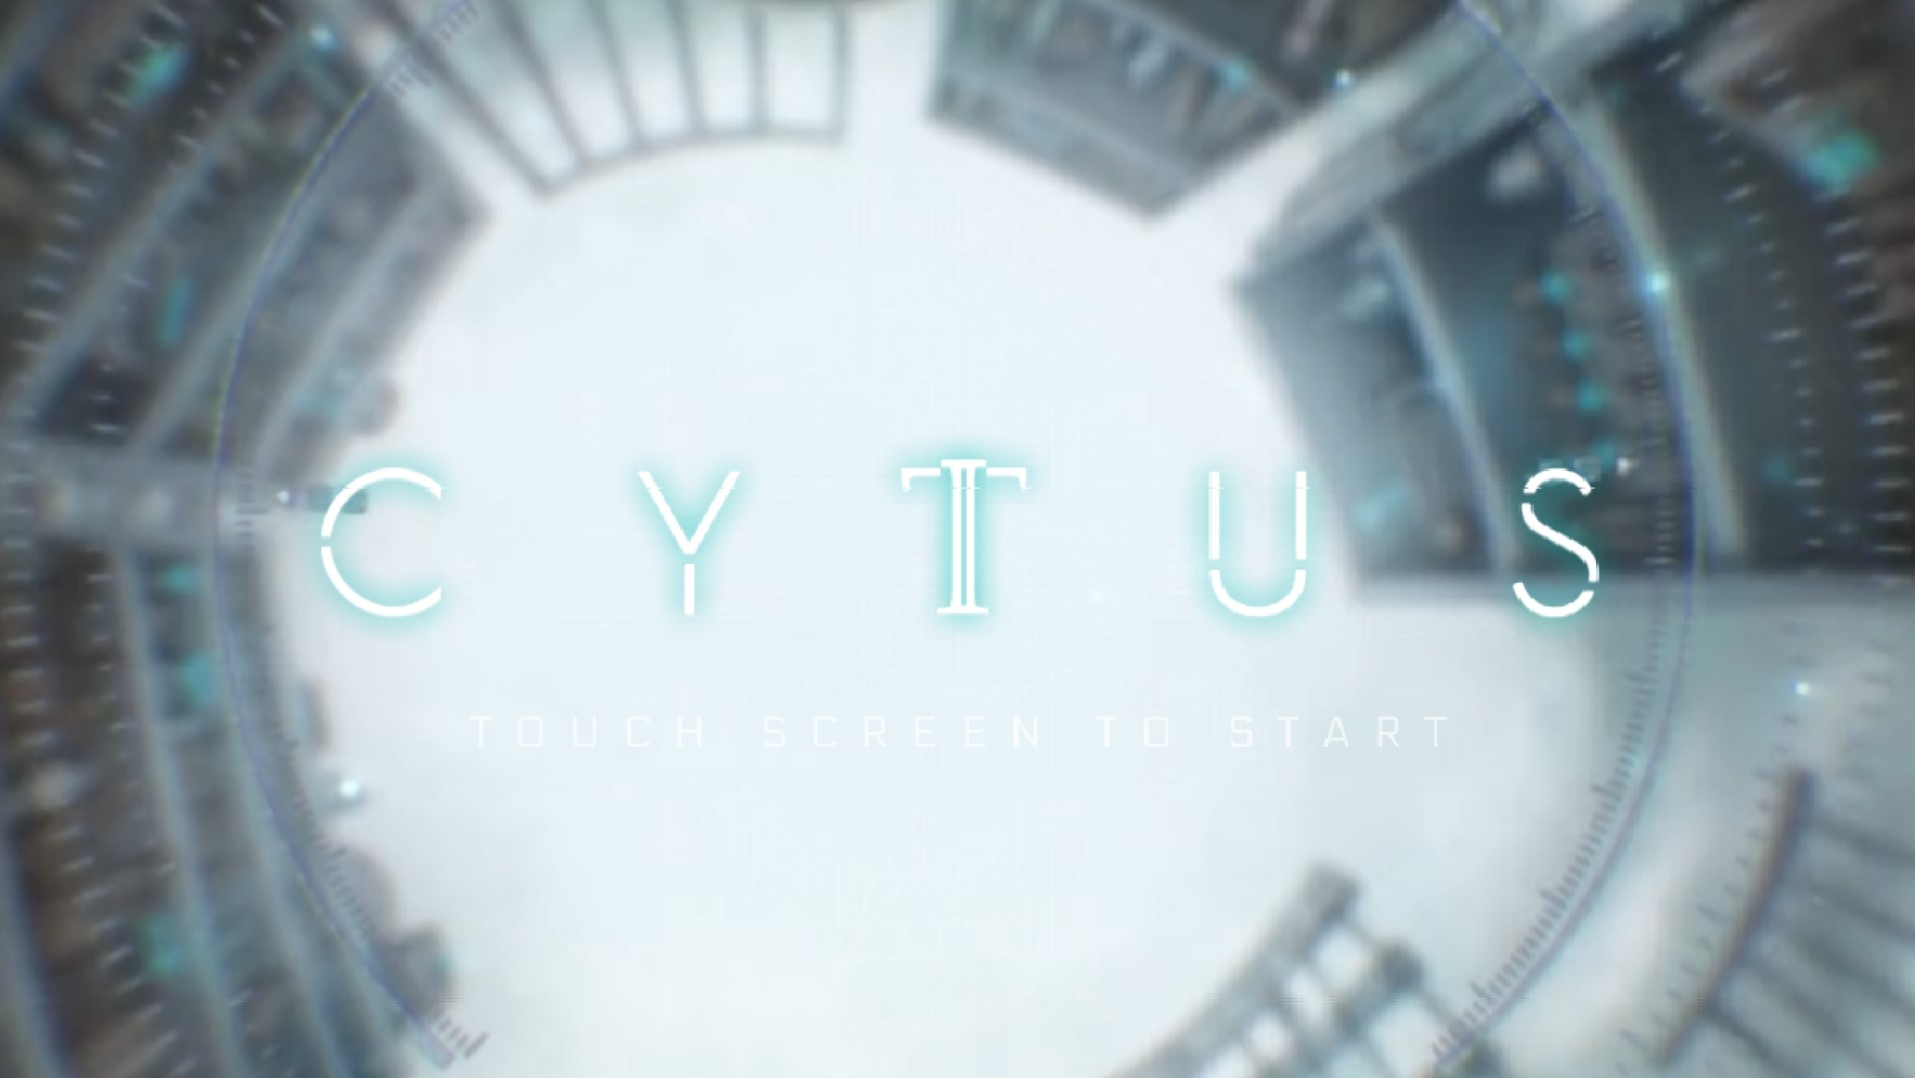 Cytus II might just be a perfect mobile rhythm game [Android Game of the Week] 1